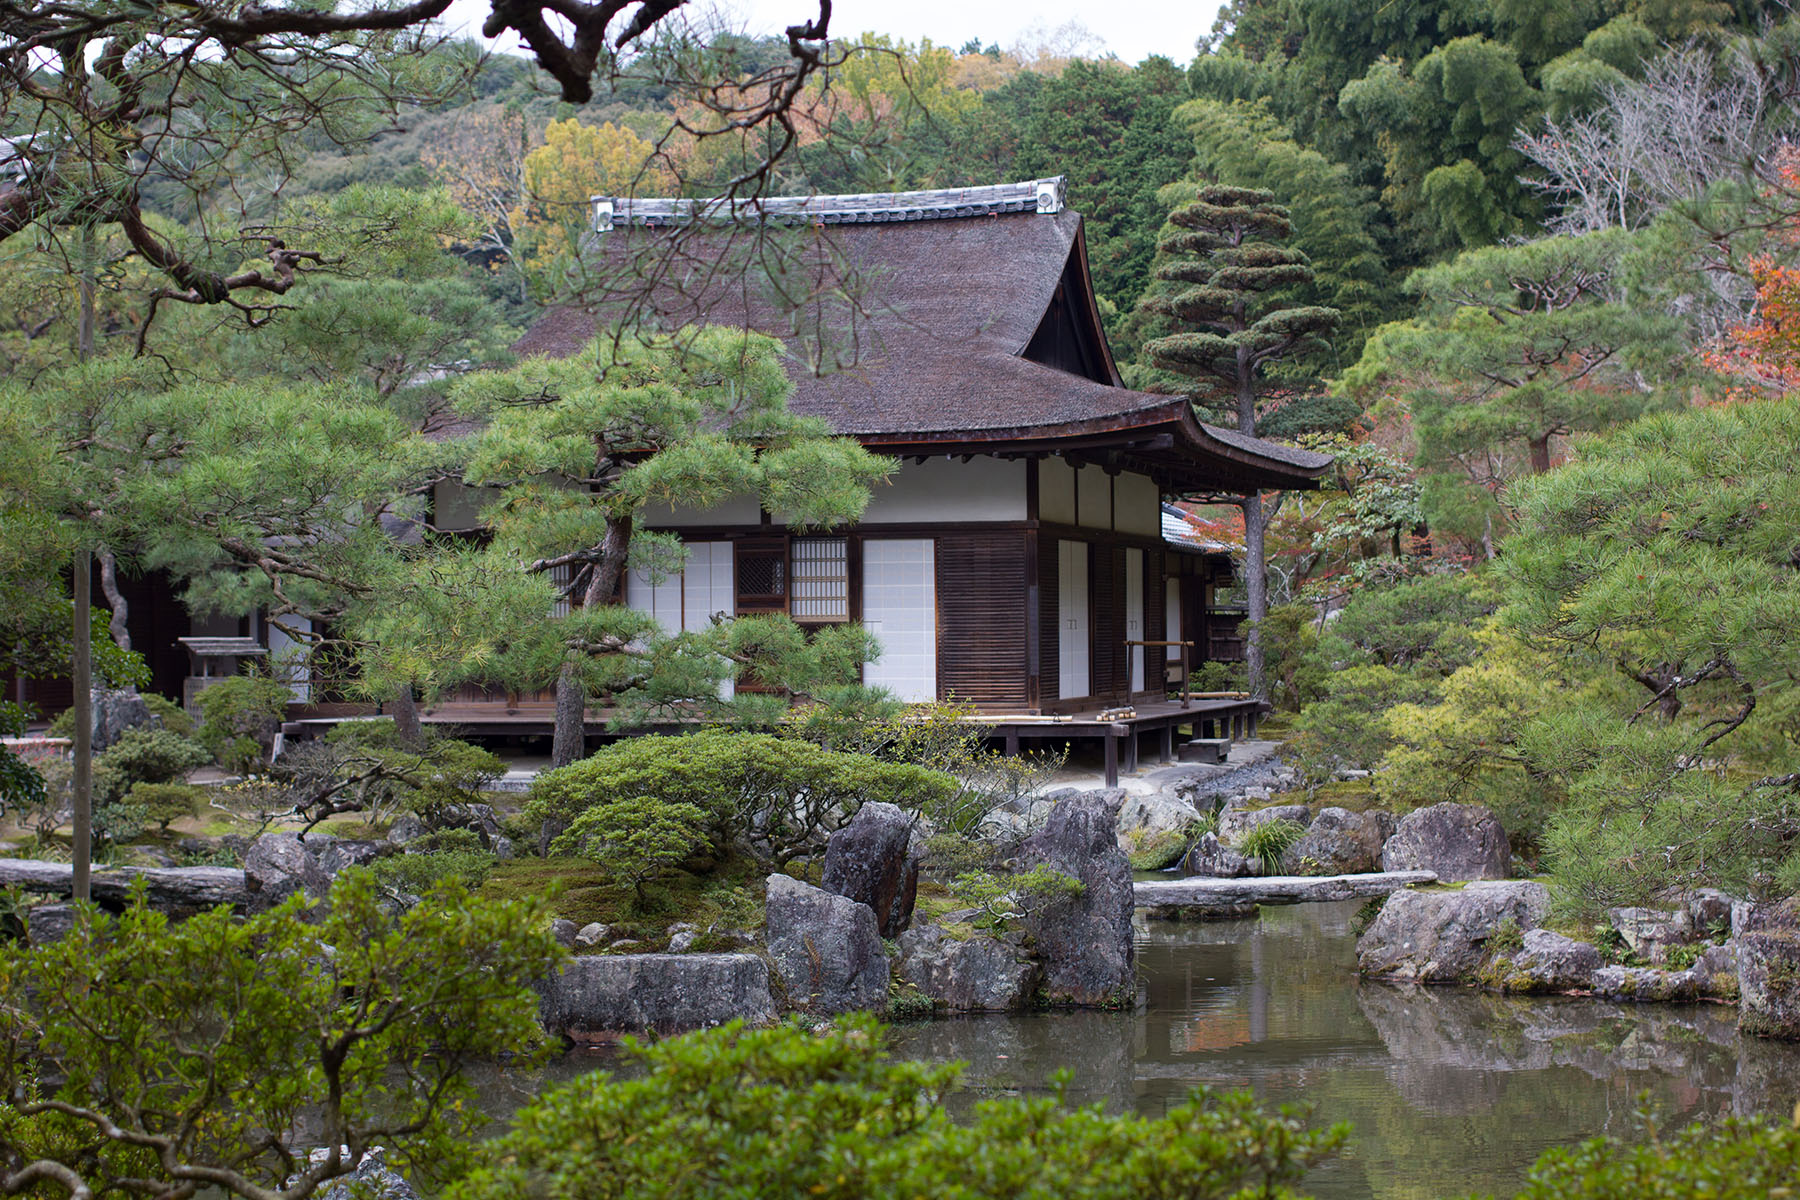 Japanese gardens and temples